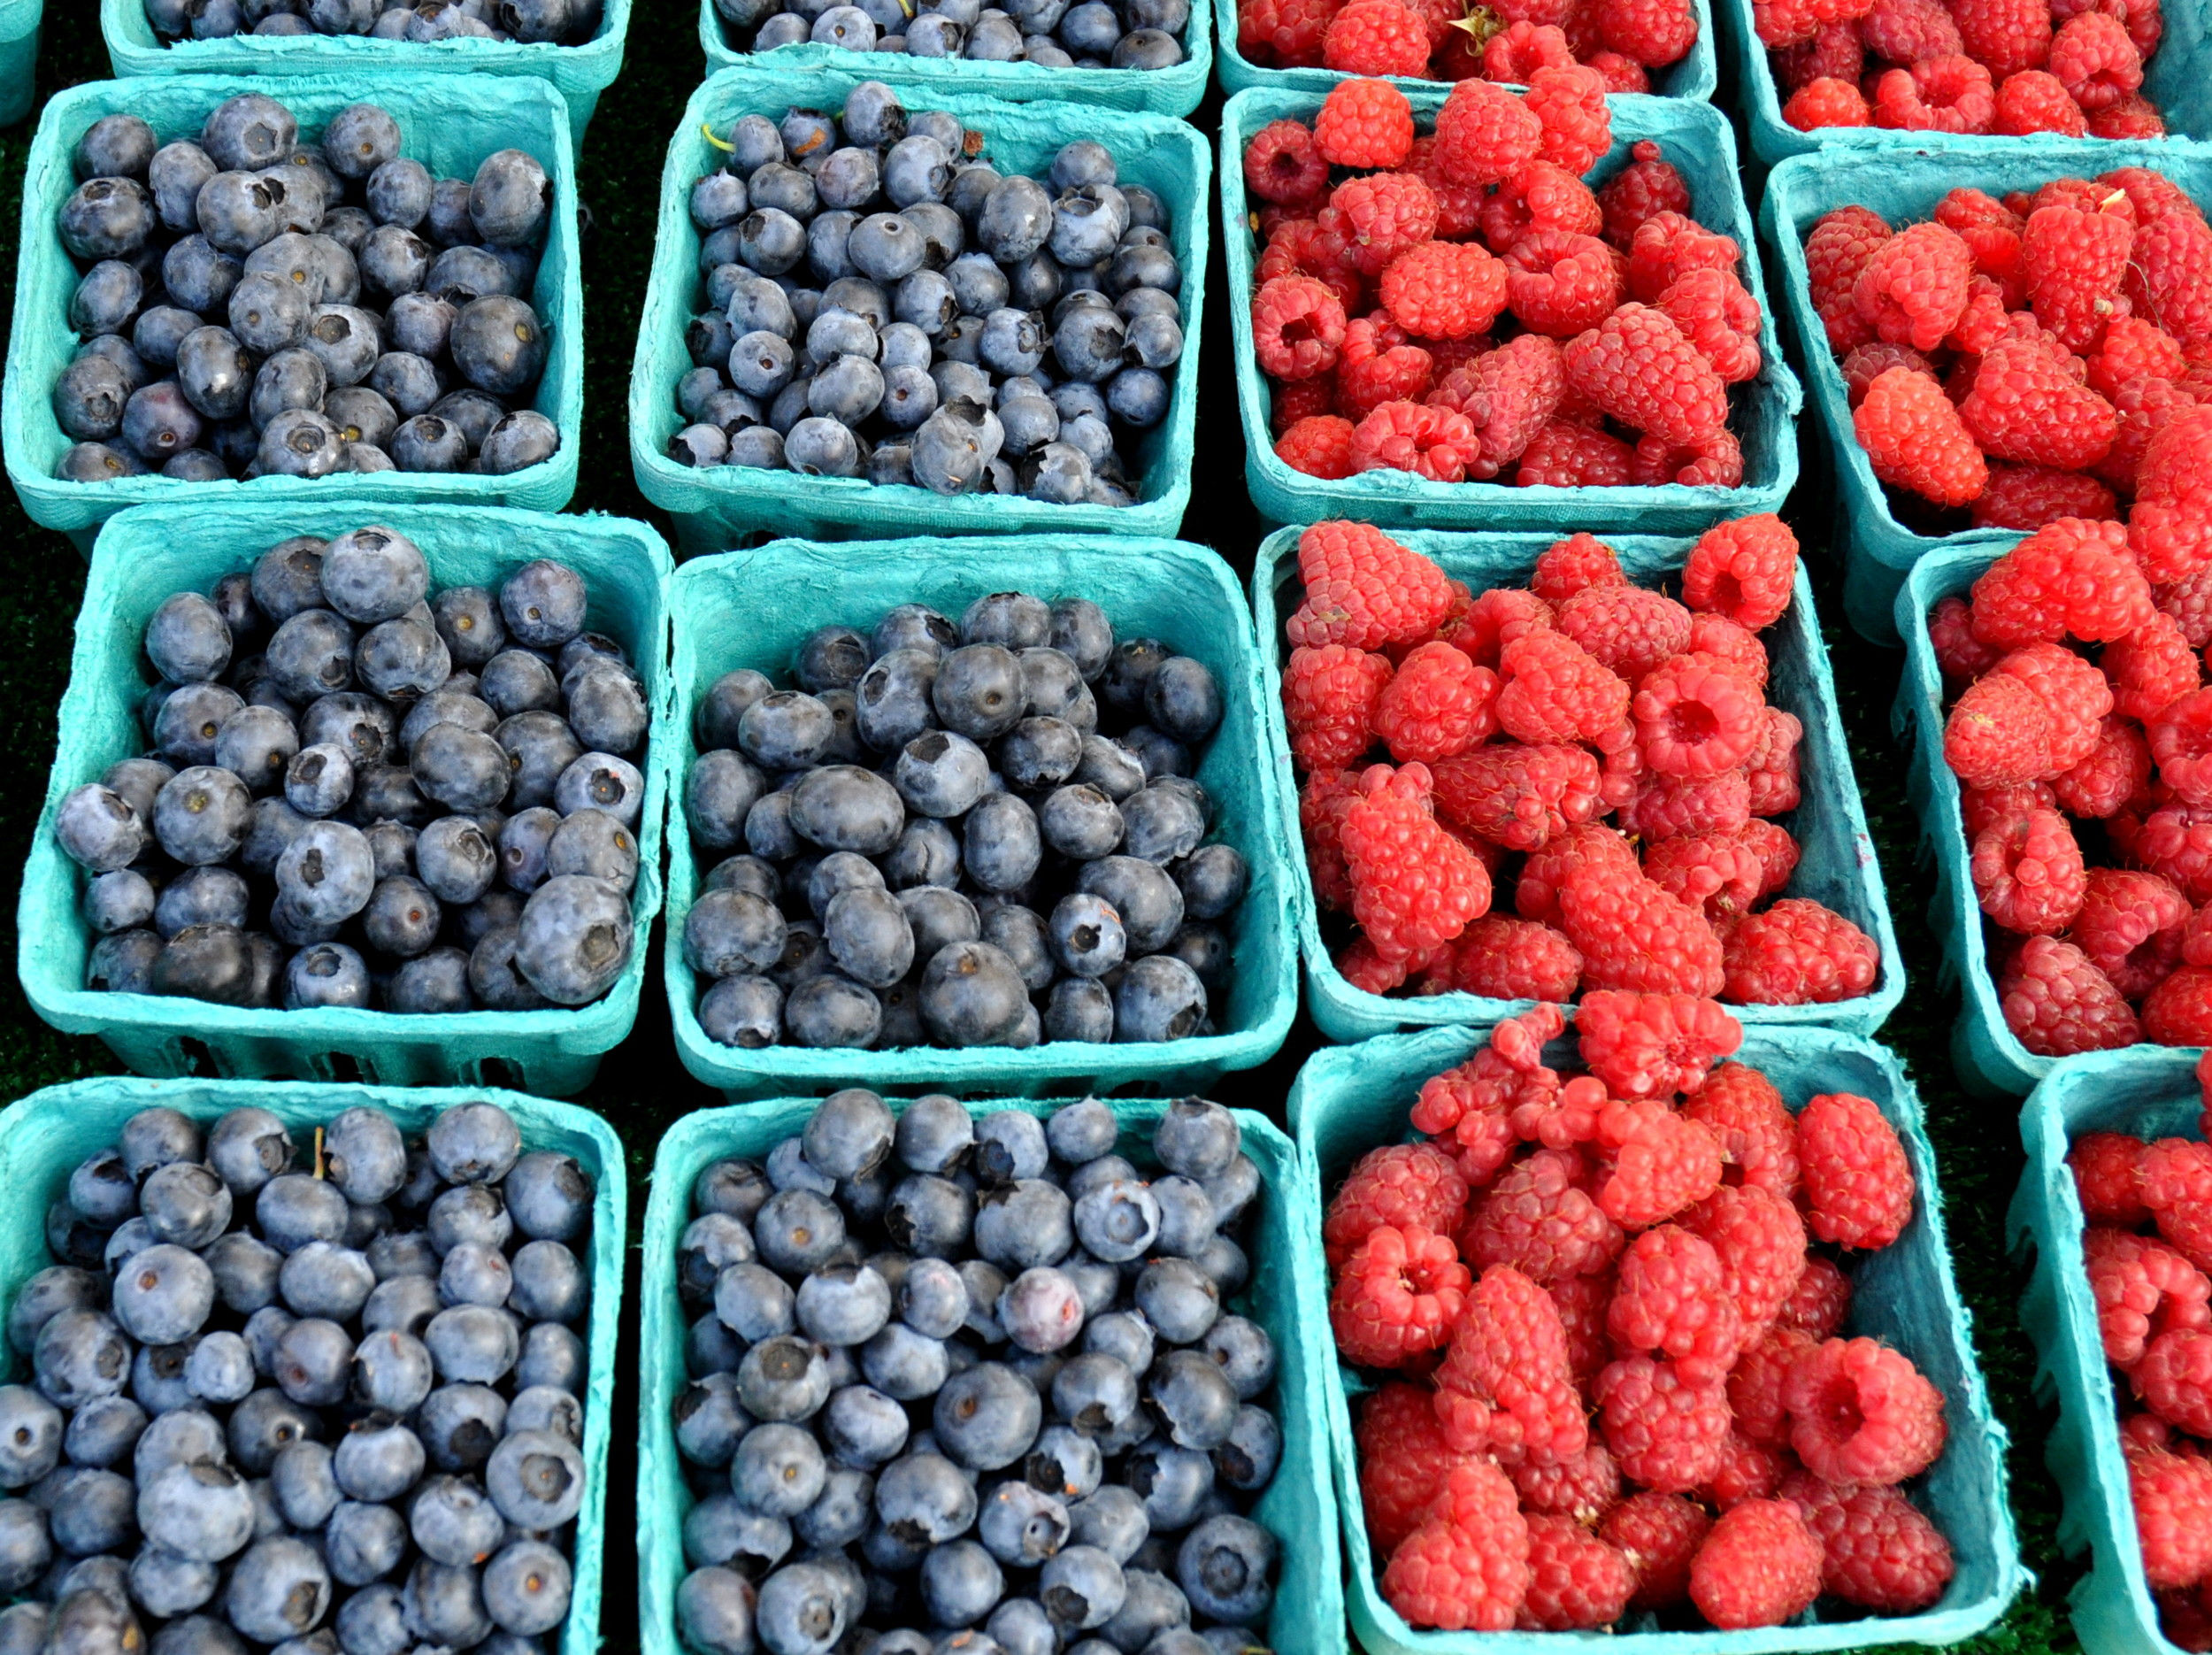 Blueberries & raspberries from Alm Hill Gardens. Photo copyright 2013 by Zachary D. Lyons.